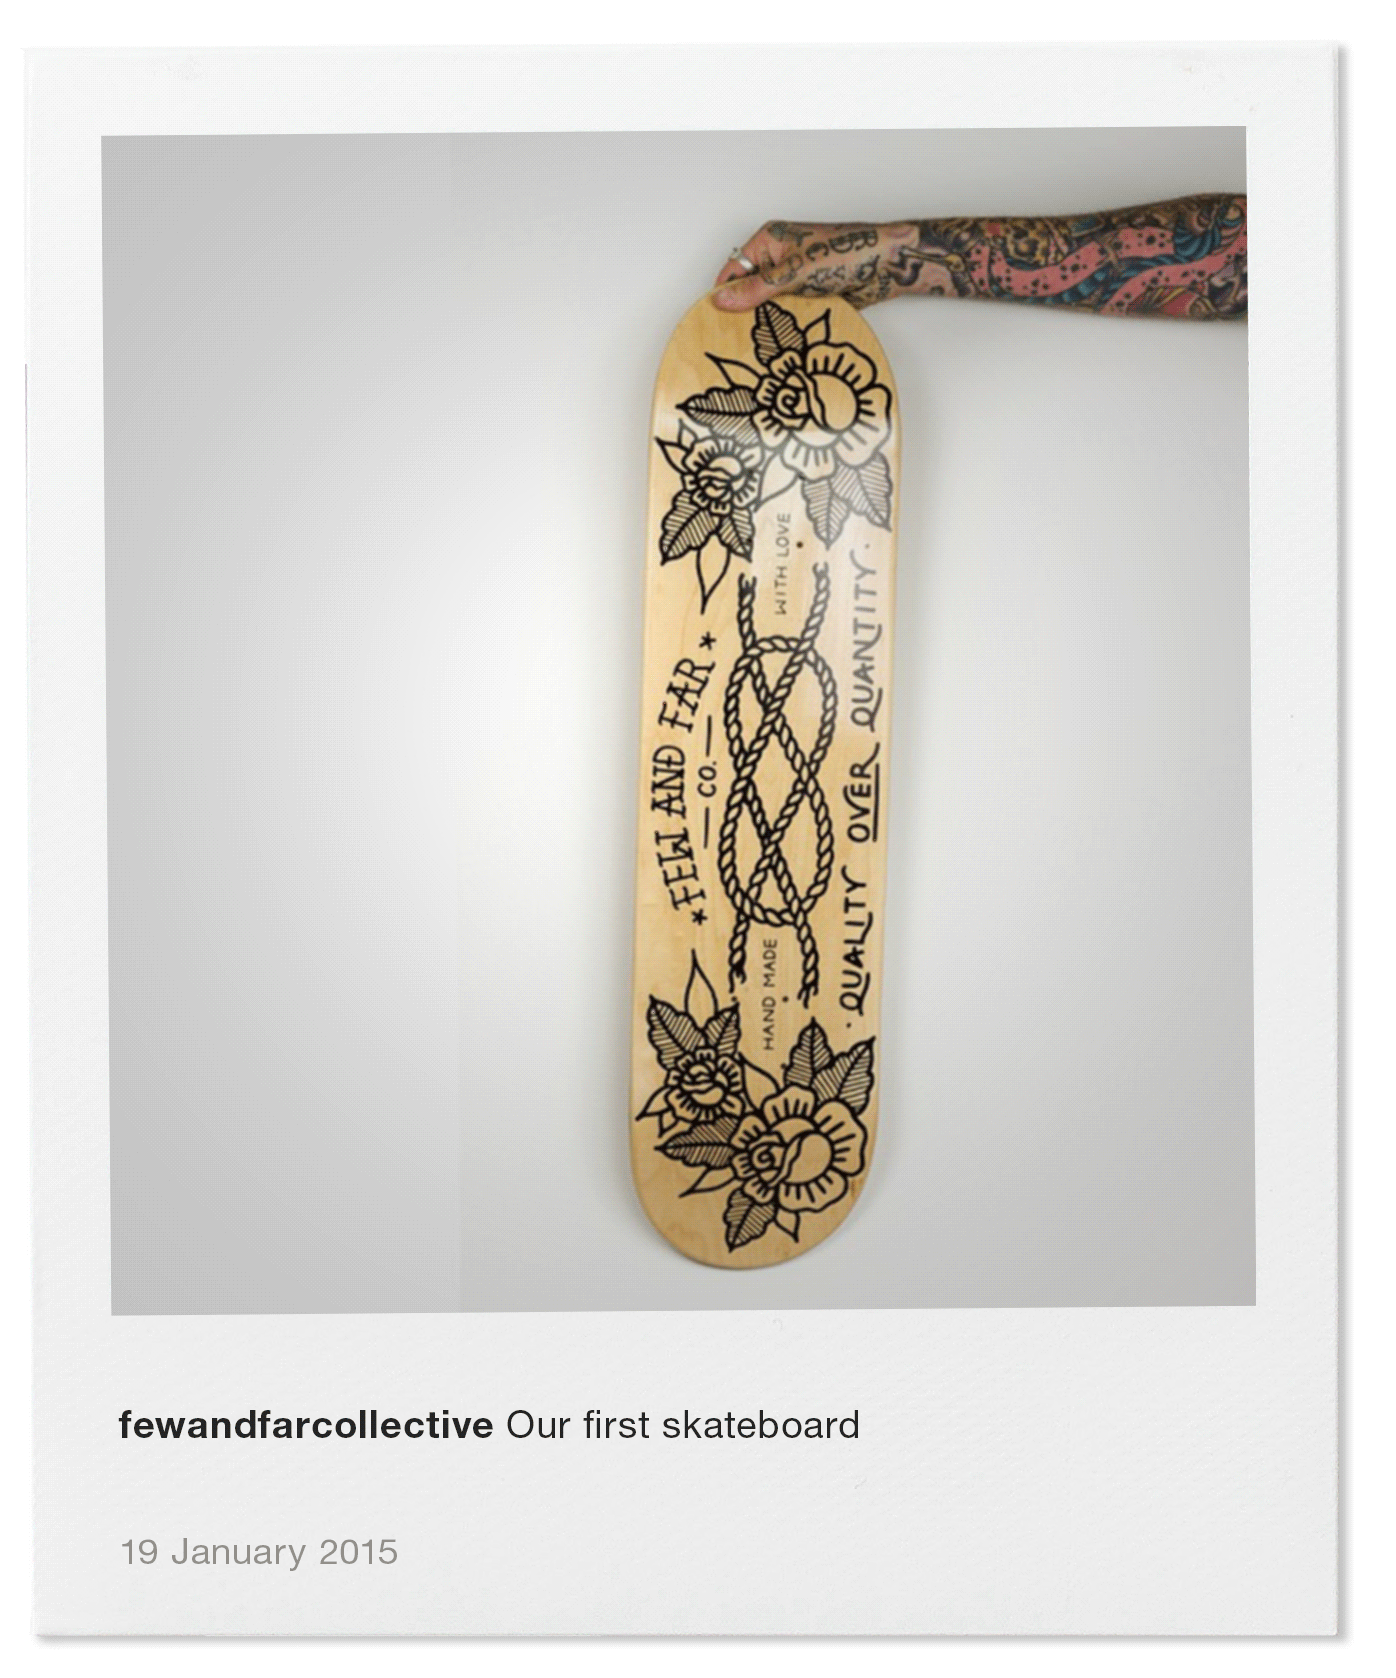 Our first skateboard